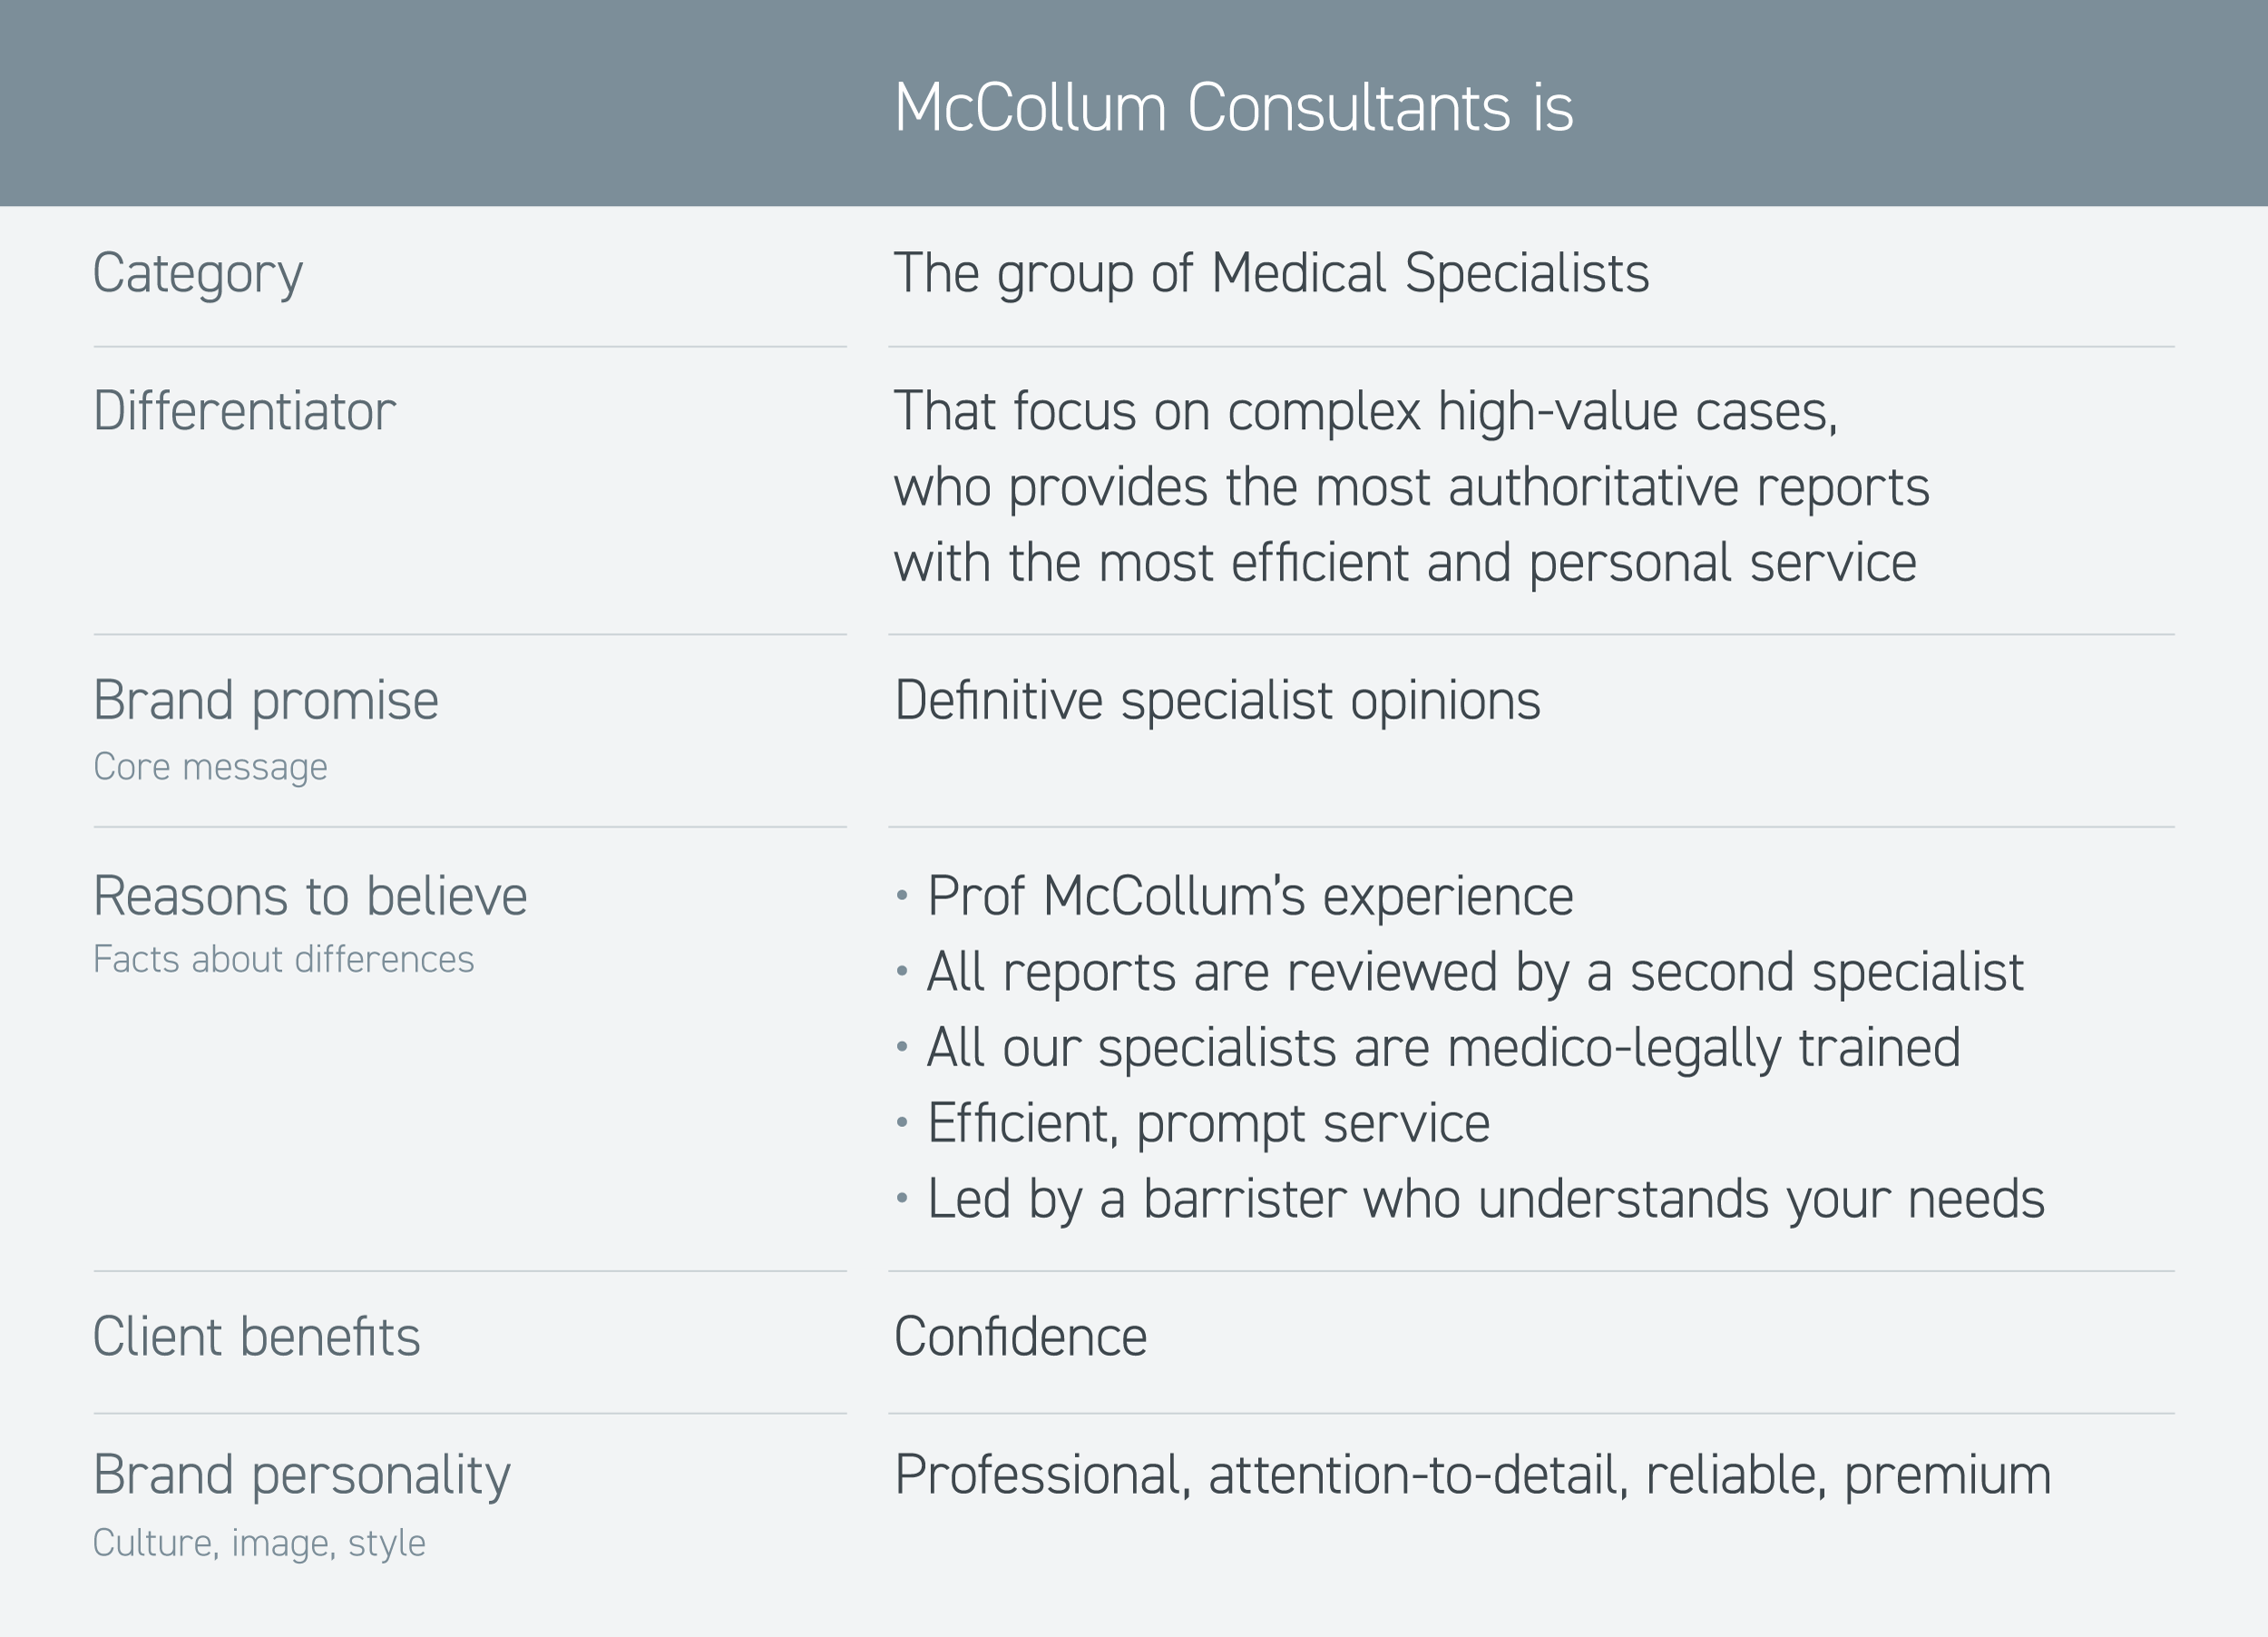 McCollum Consultants brand platform – the basis for the naming, brand and communication design.